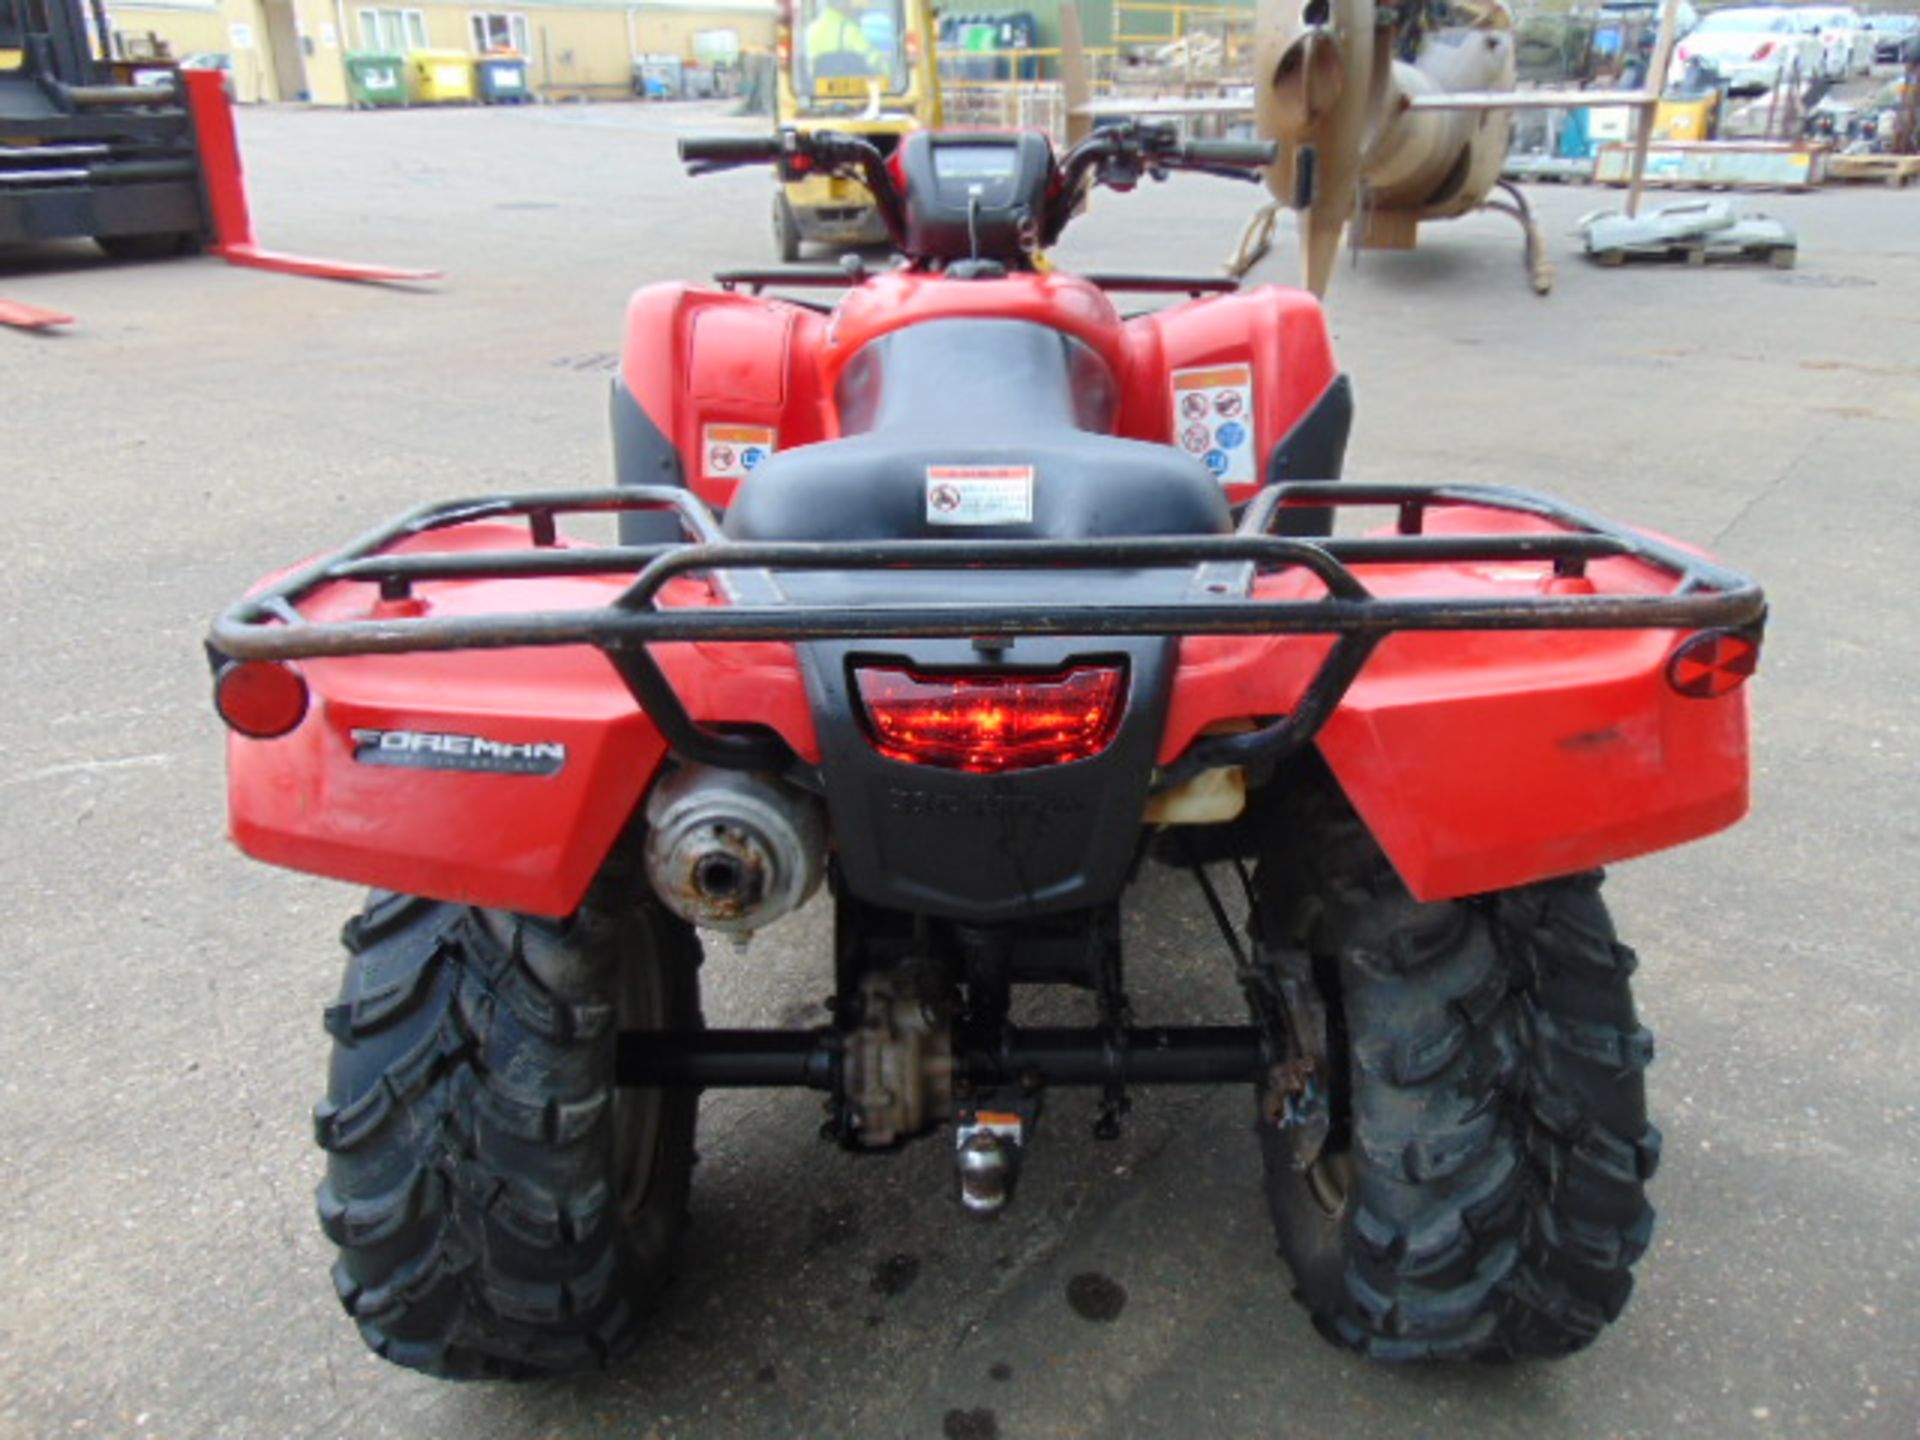 Honda TRX 500 4WD Quad Bike ONLY 2,300 HOURS! - Image 7 of 20